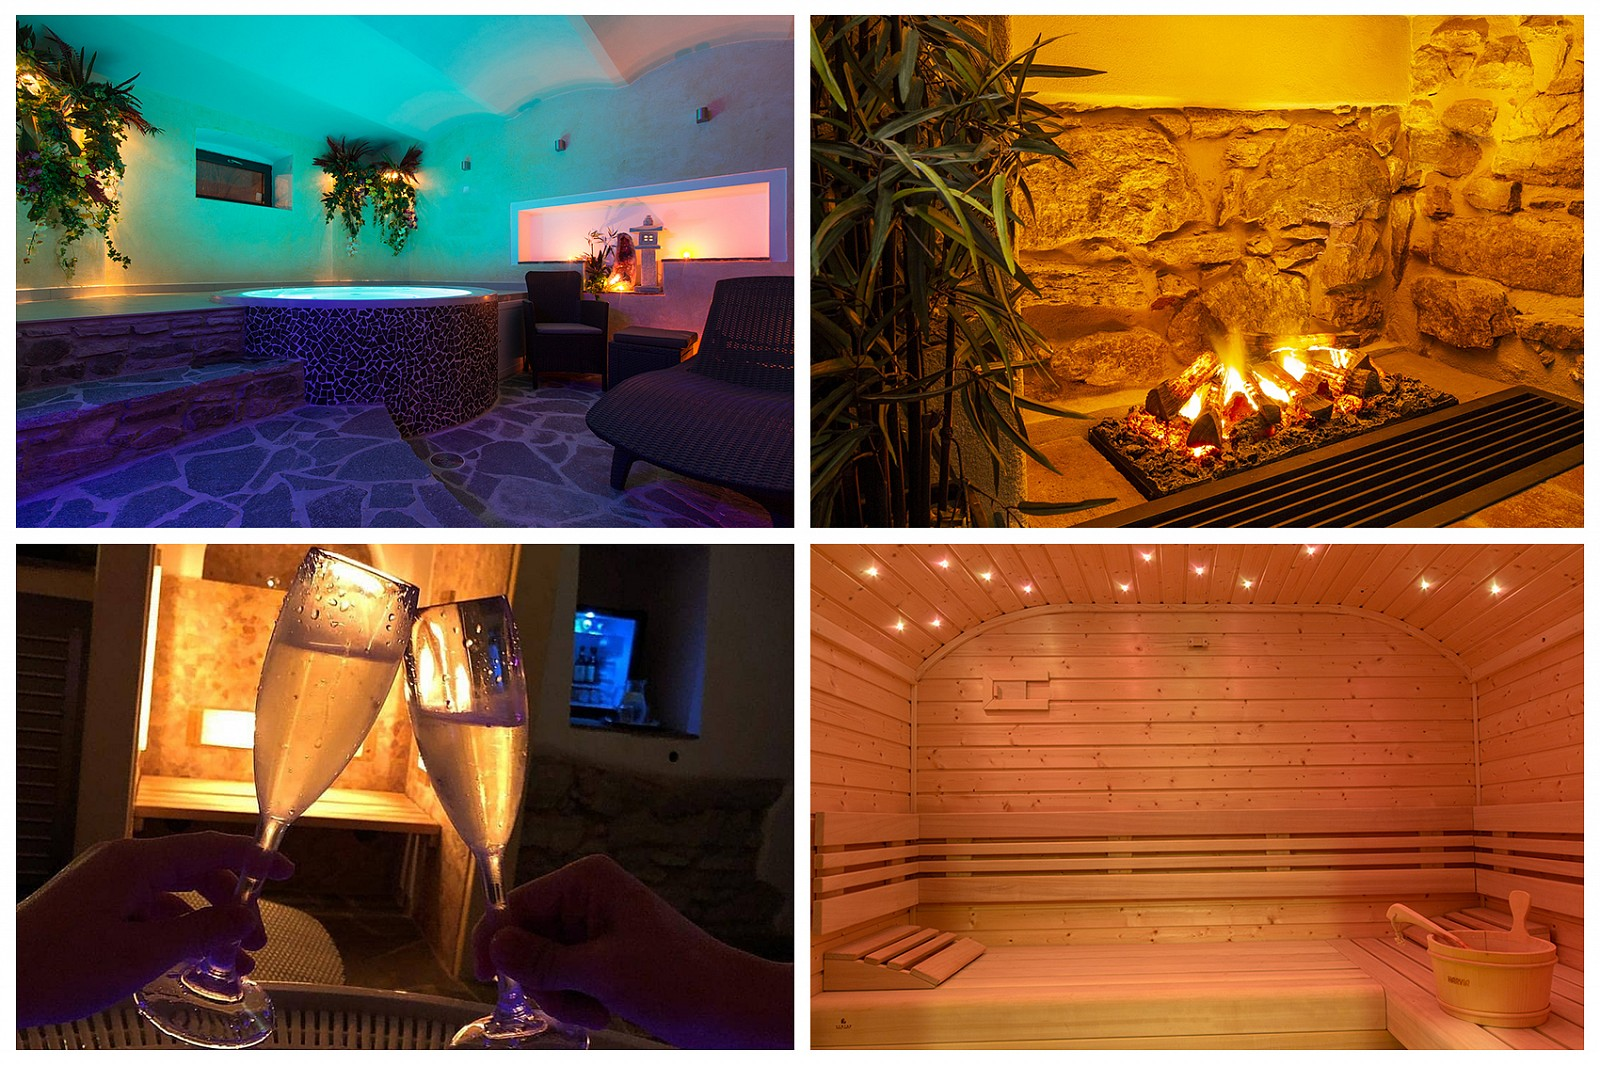 wellness-4-fotka.jpg